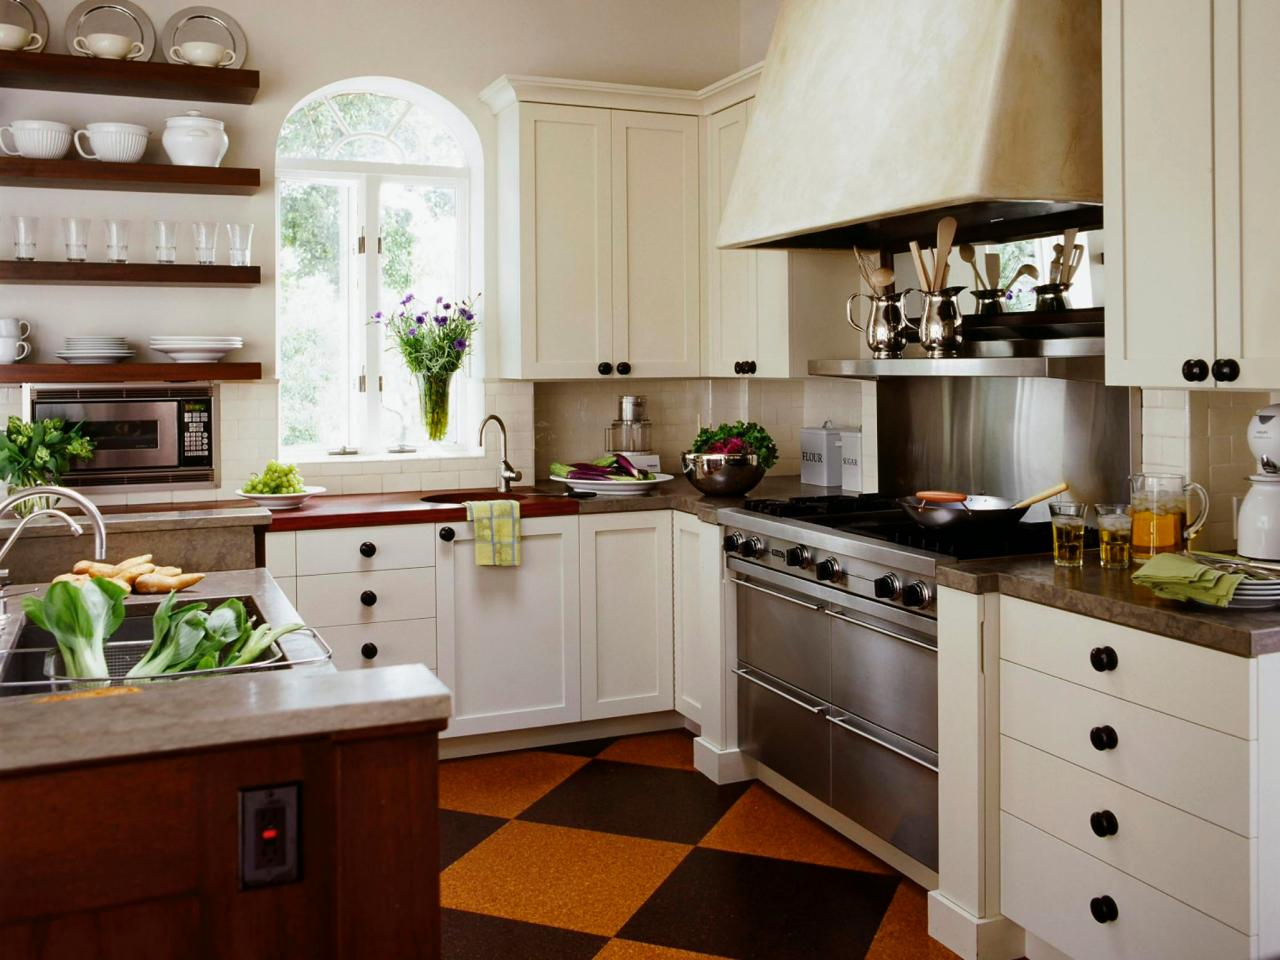 Cottage kitchens hgtv for Country kitchen floor ideas